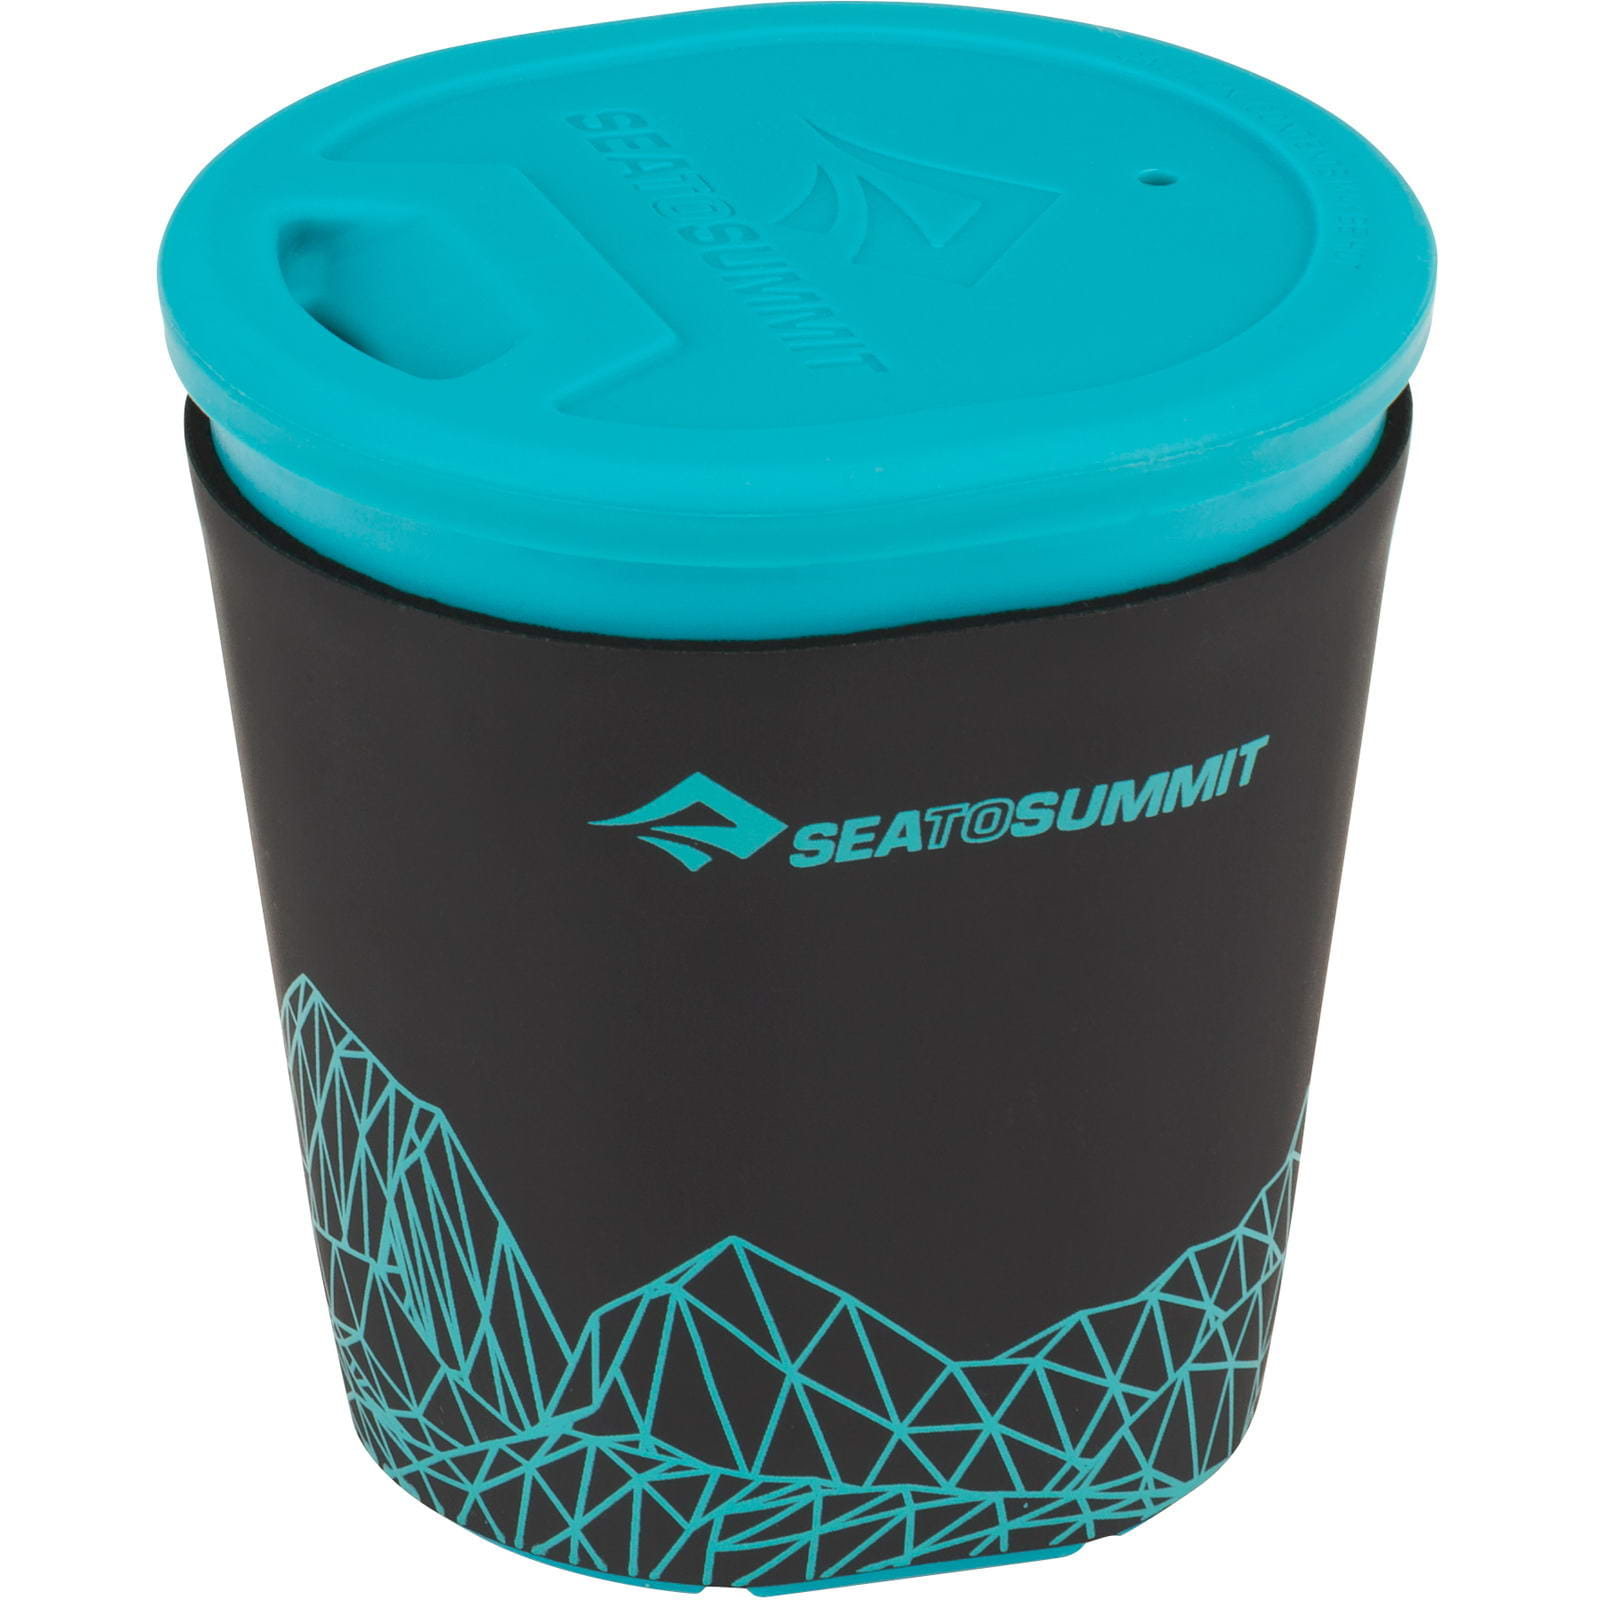 Sea to Summit DeltaLite Insul Mug - Thermobecher pacific blue - Bild 3